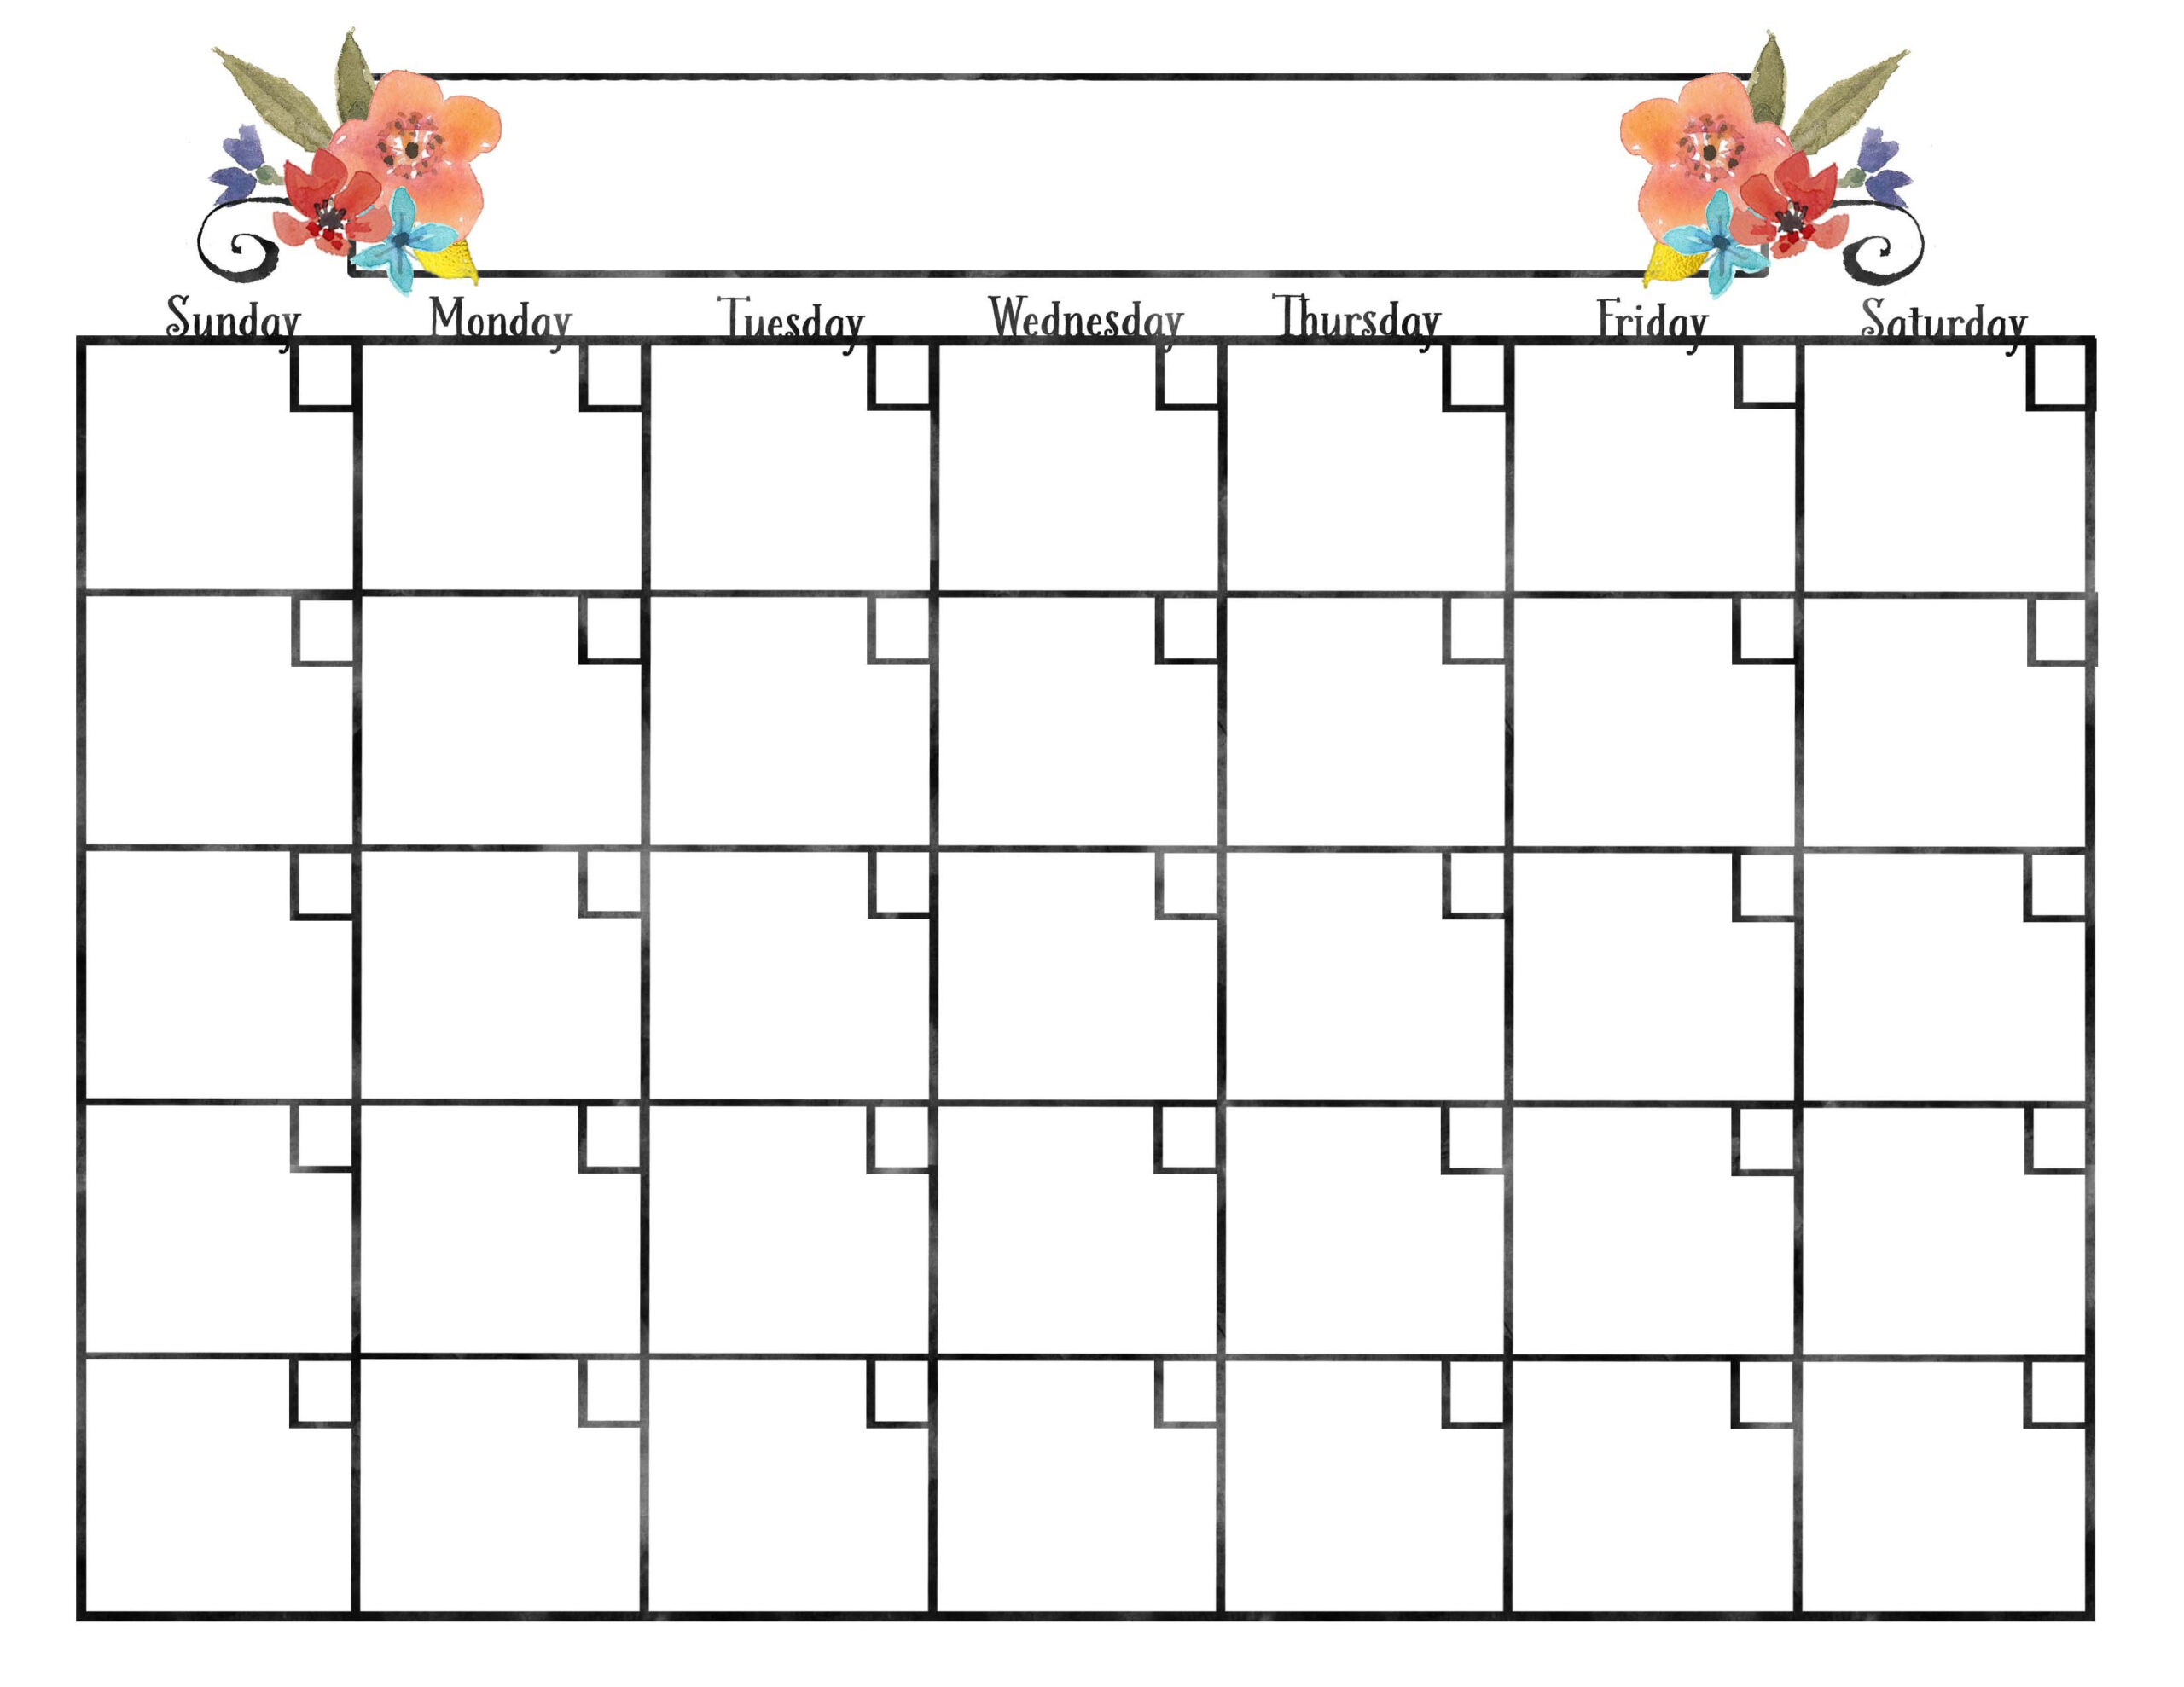 Monthly Calendars   Kkeeler  Calender Monthly Print Outs